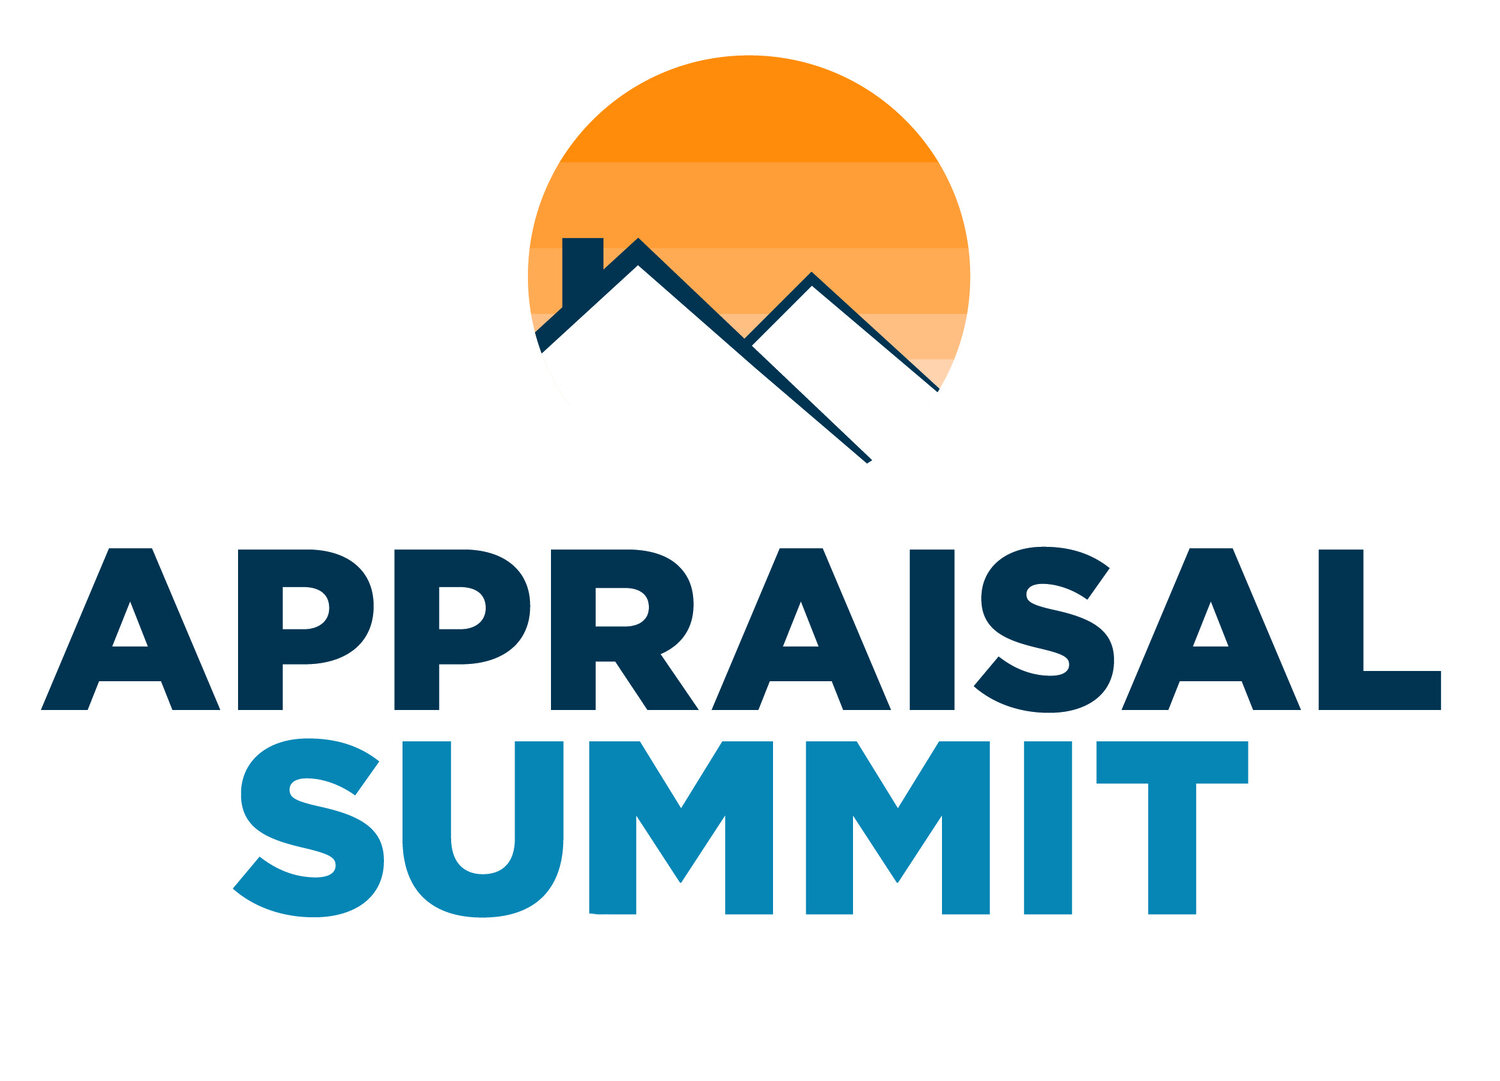 Agenda — Appraisal Summit